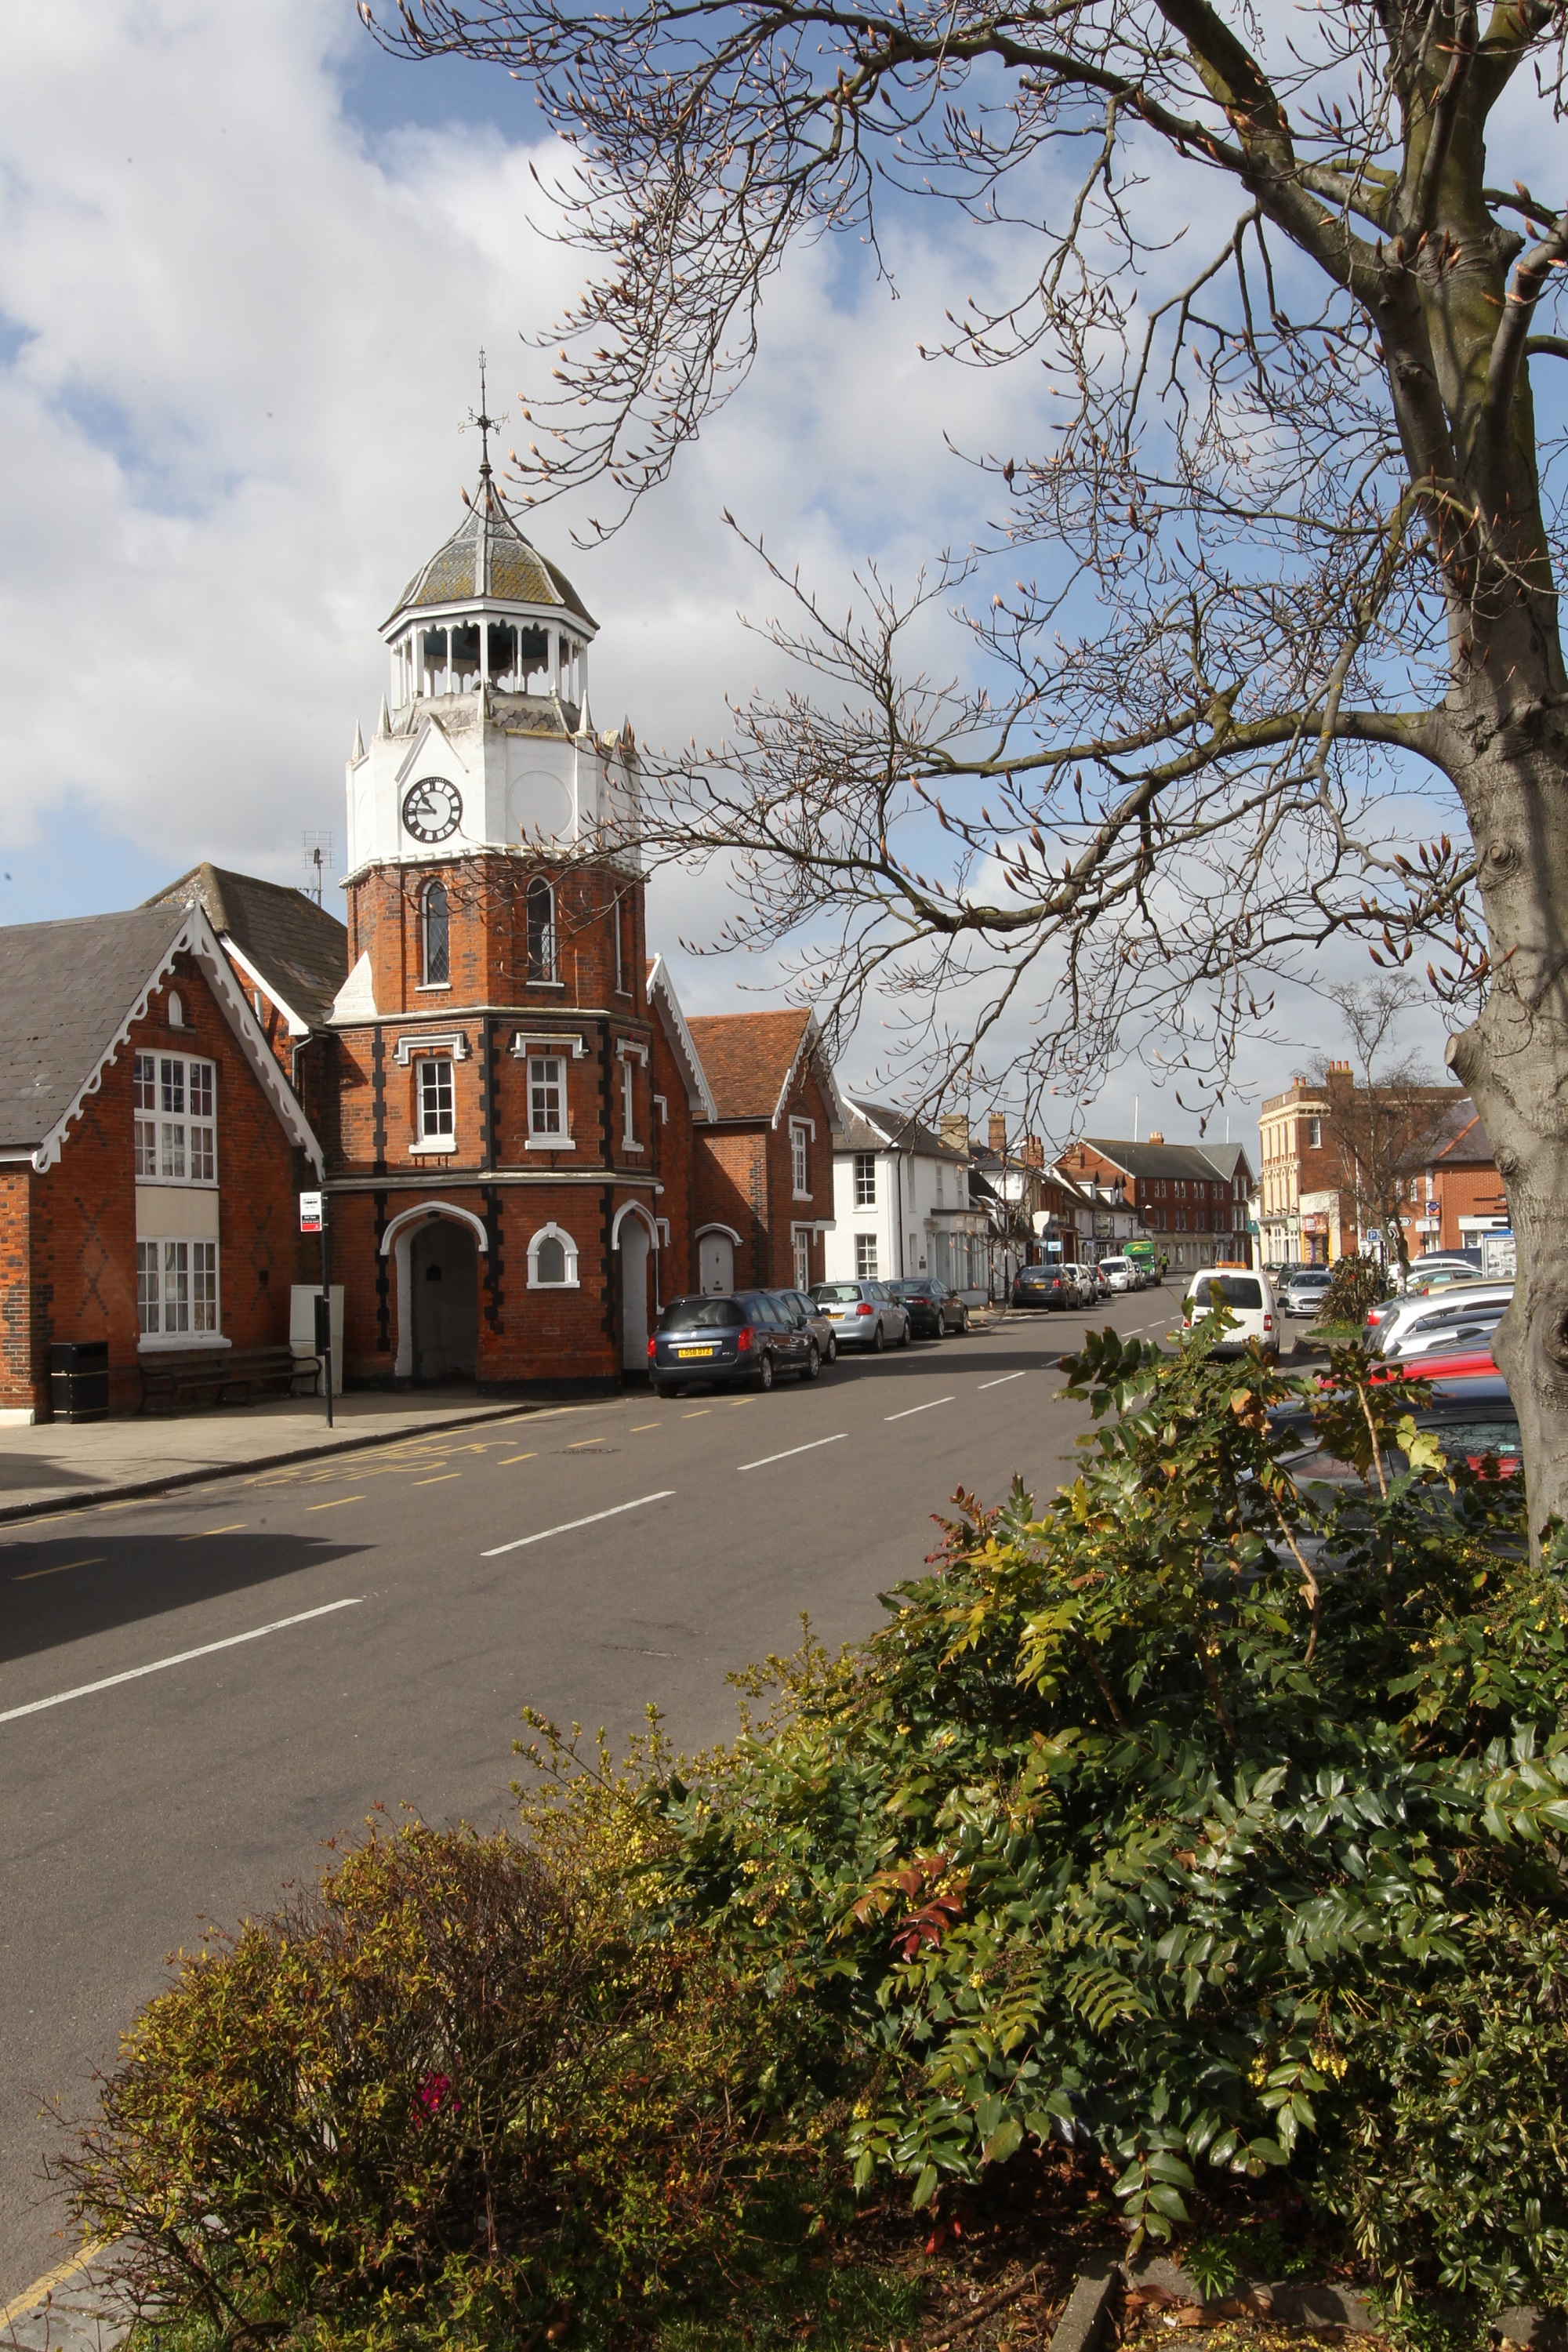 £50k grant hopes for Burnham and Dengie to boost tourism